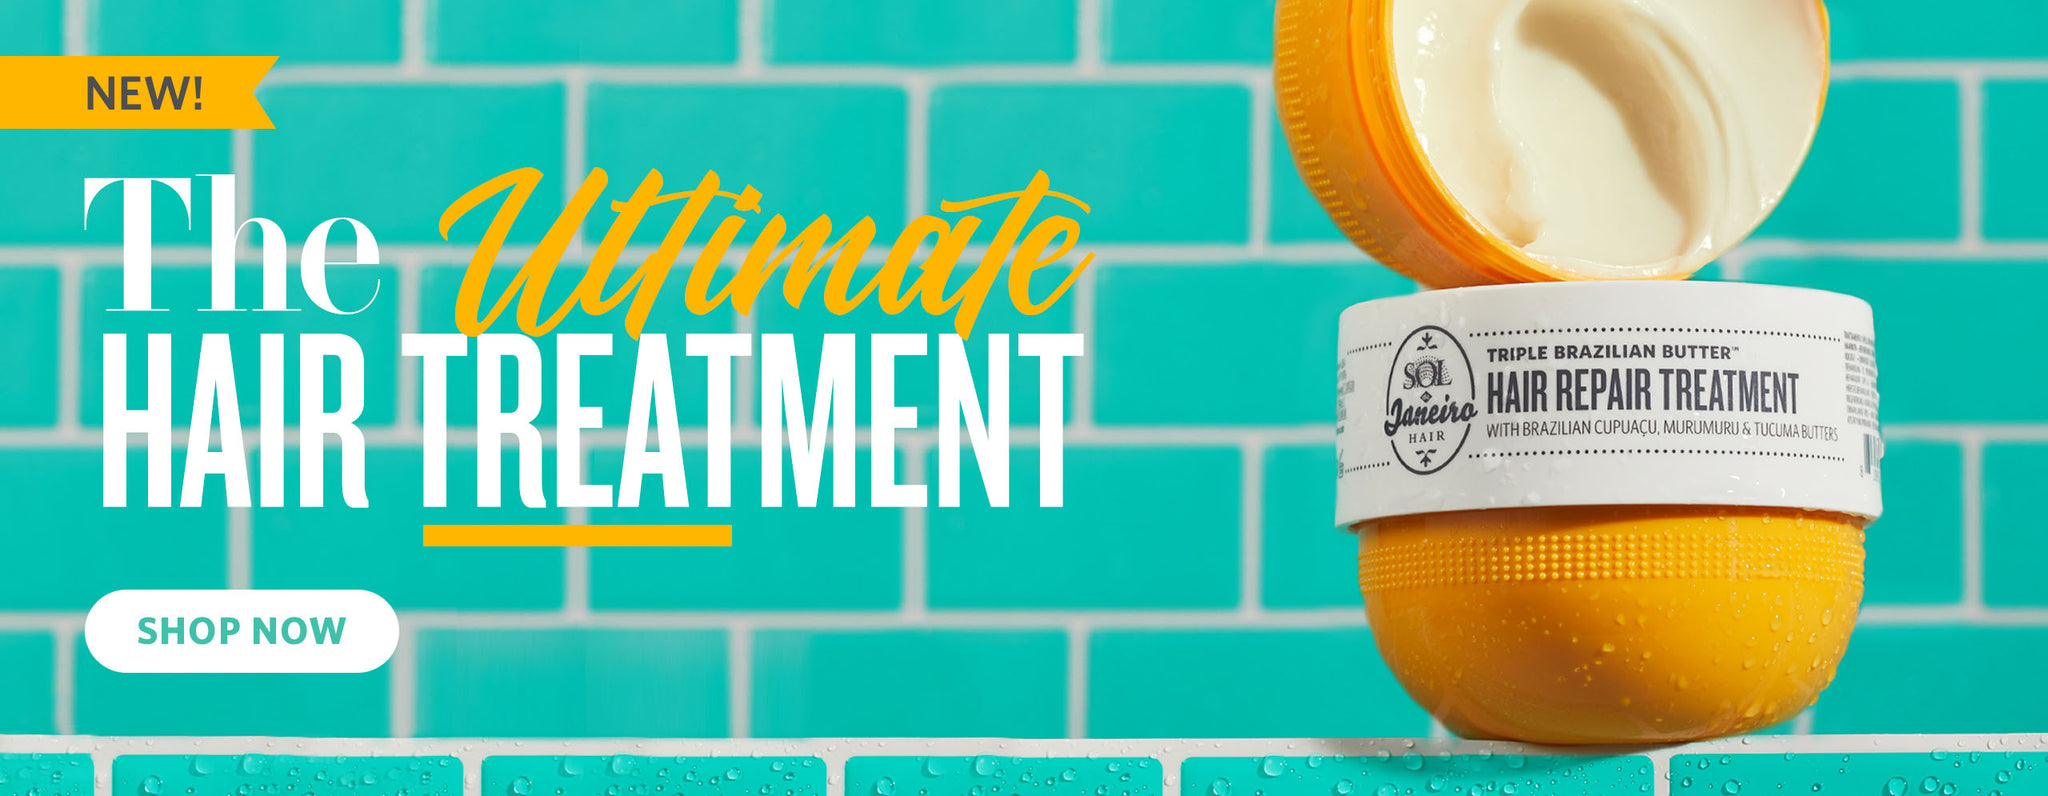 NEW! The Ultimate HAIR TREATMENT, SHOP NOW